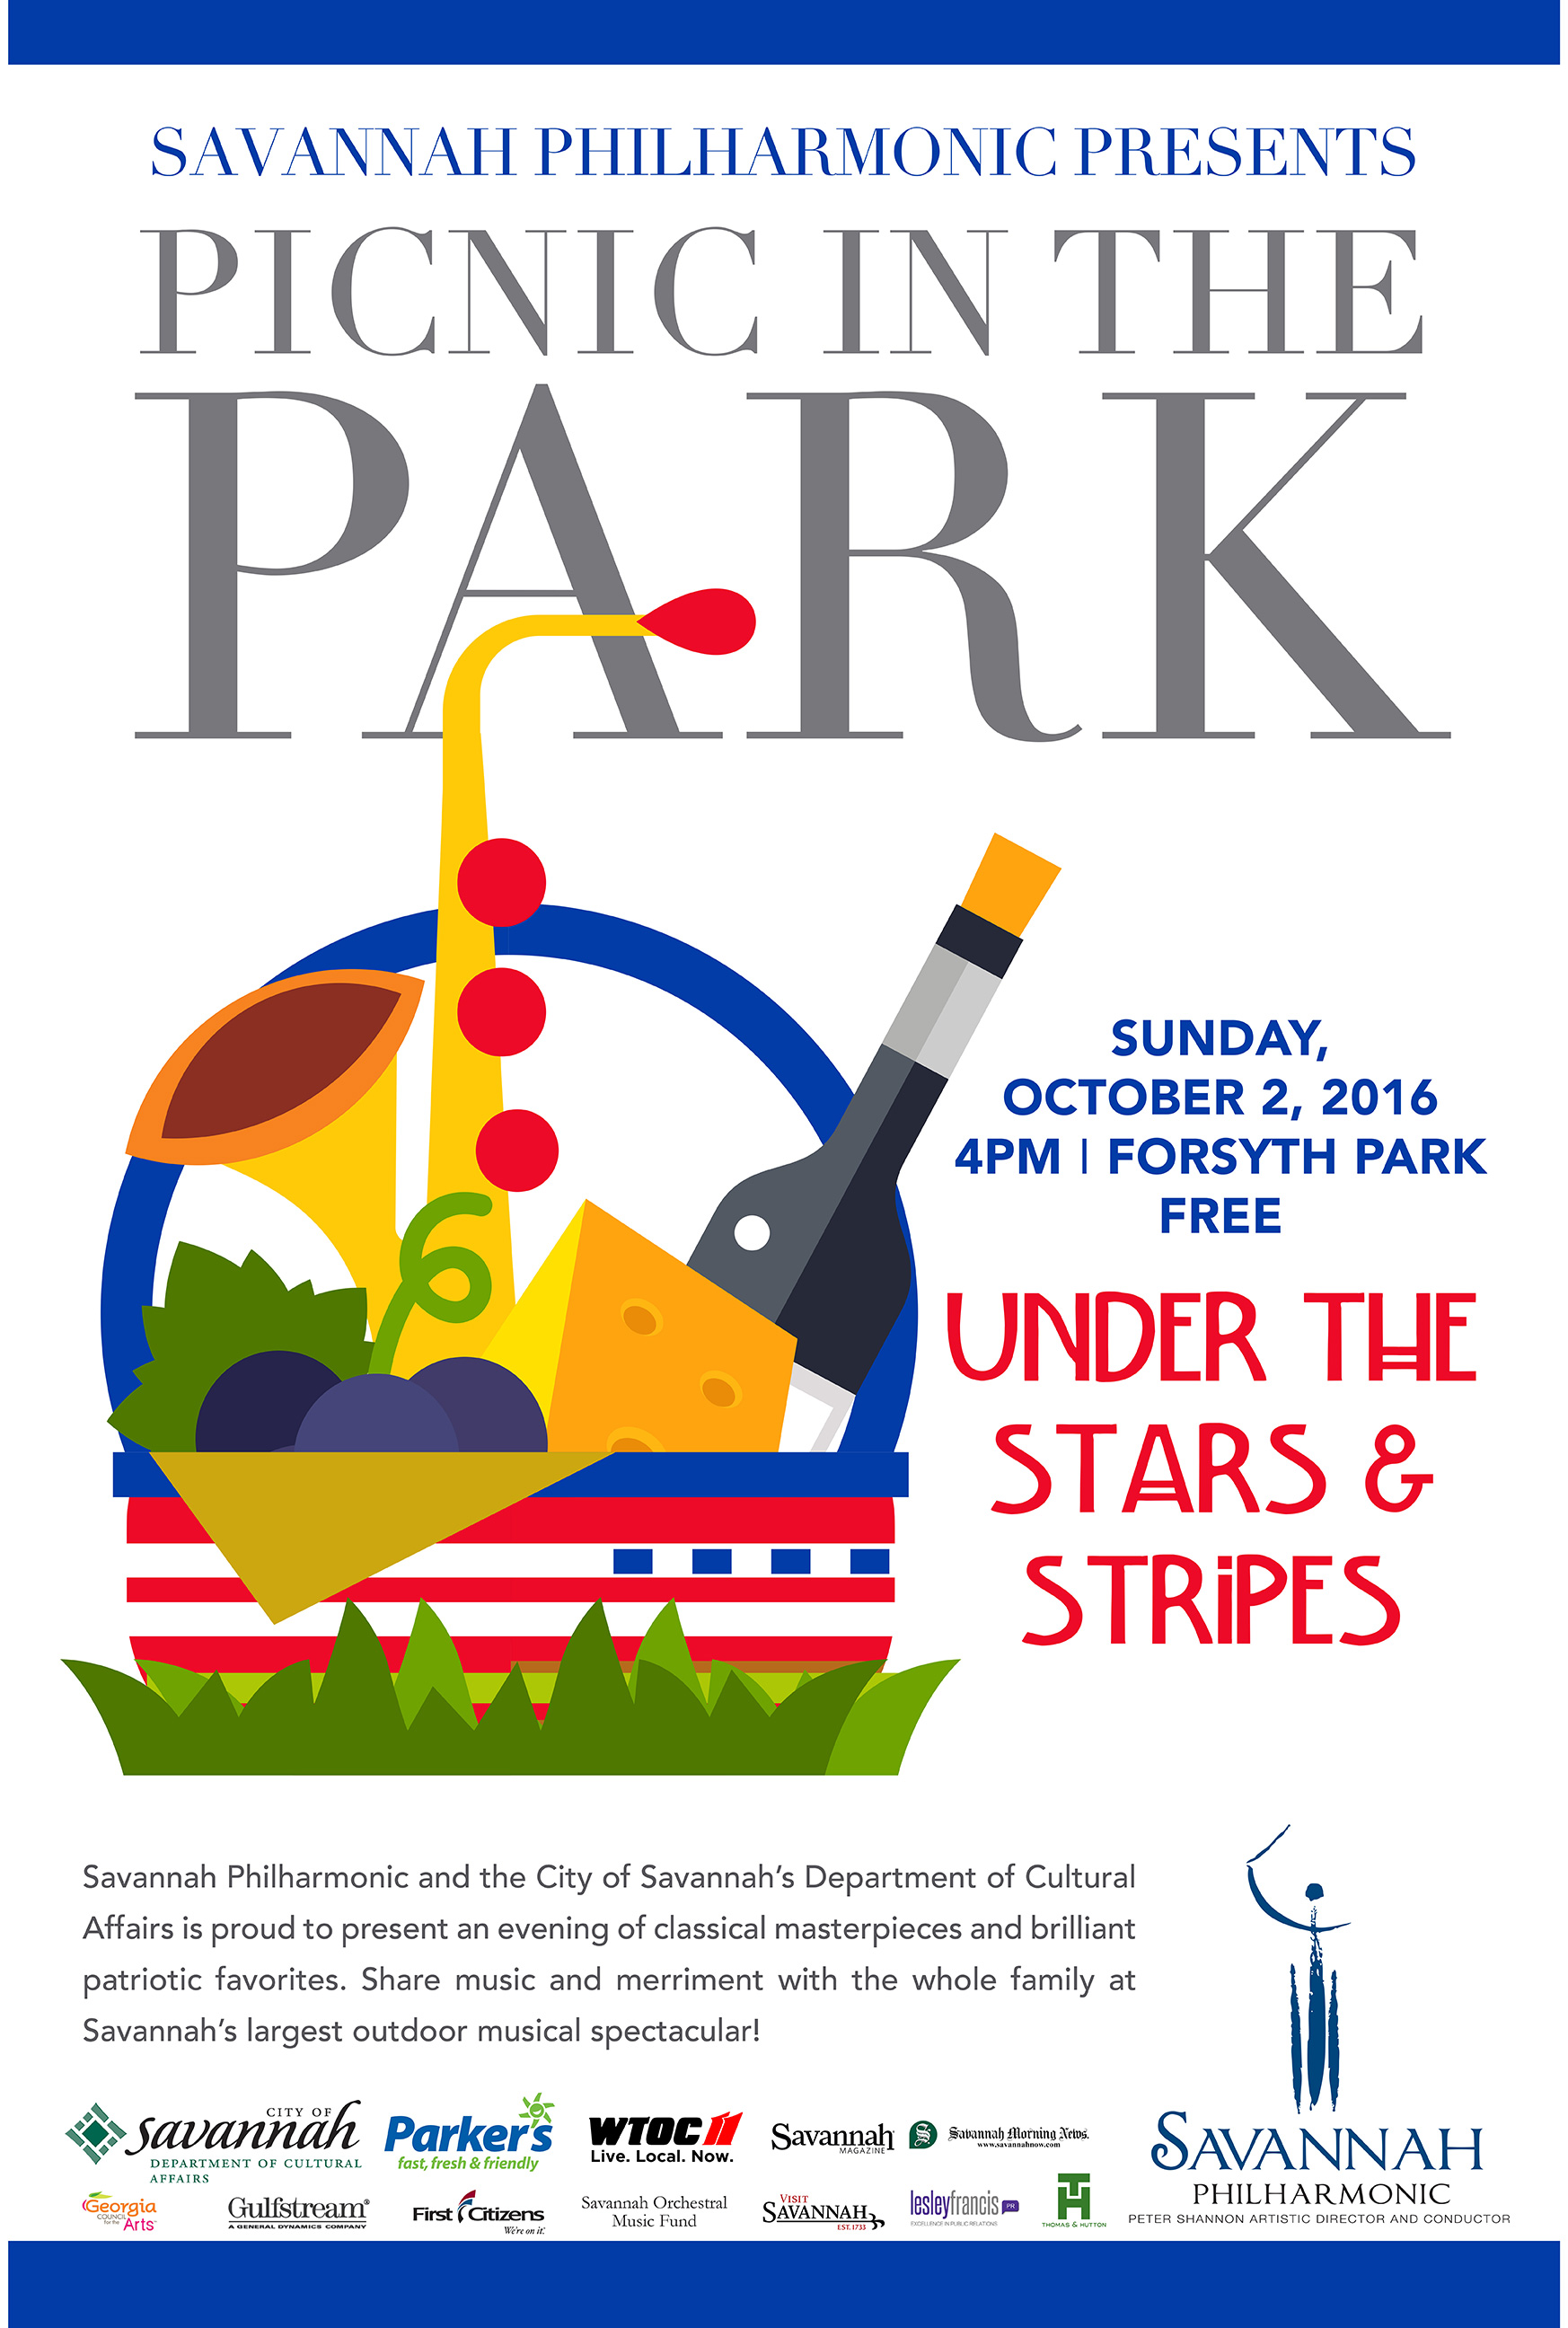 Picnic-in-the-Park-poster-2016-USE-THIS-ONE-2.jpg